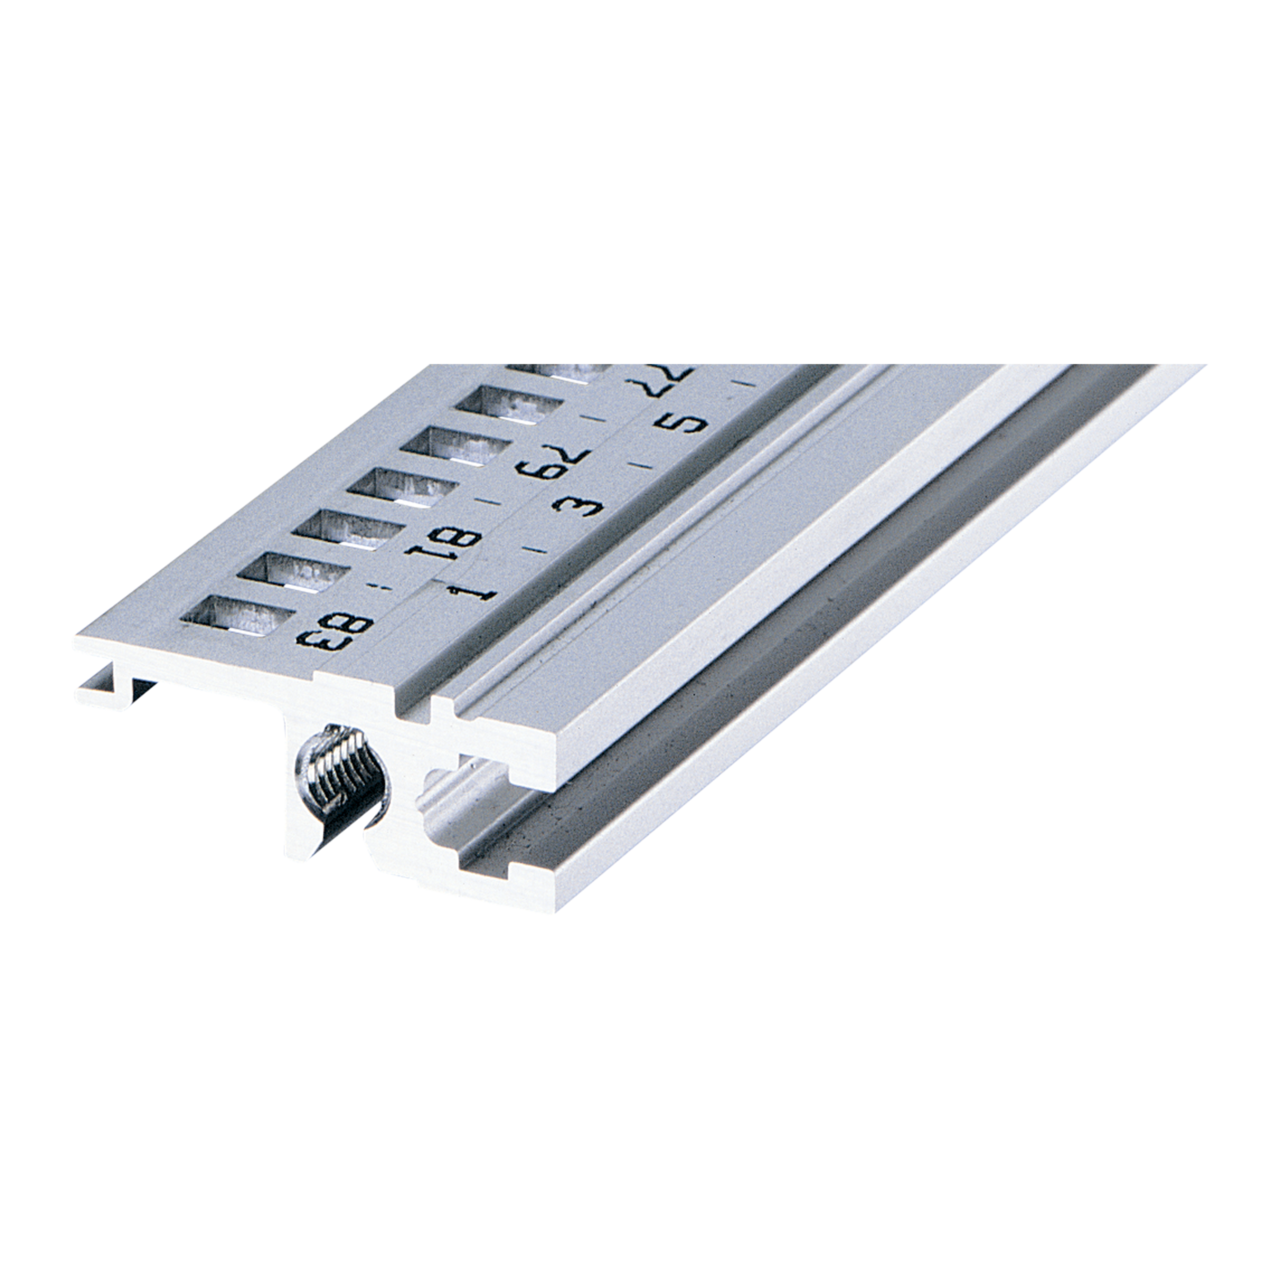 Imagen para Horizontal rail, rear, type L-ST, light, standard de Schroff - Norteamérica